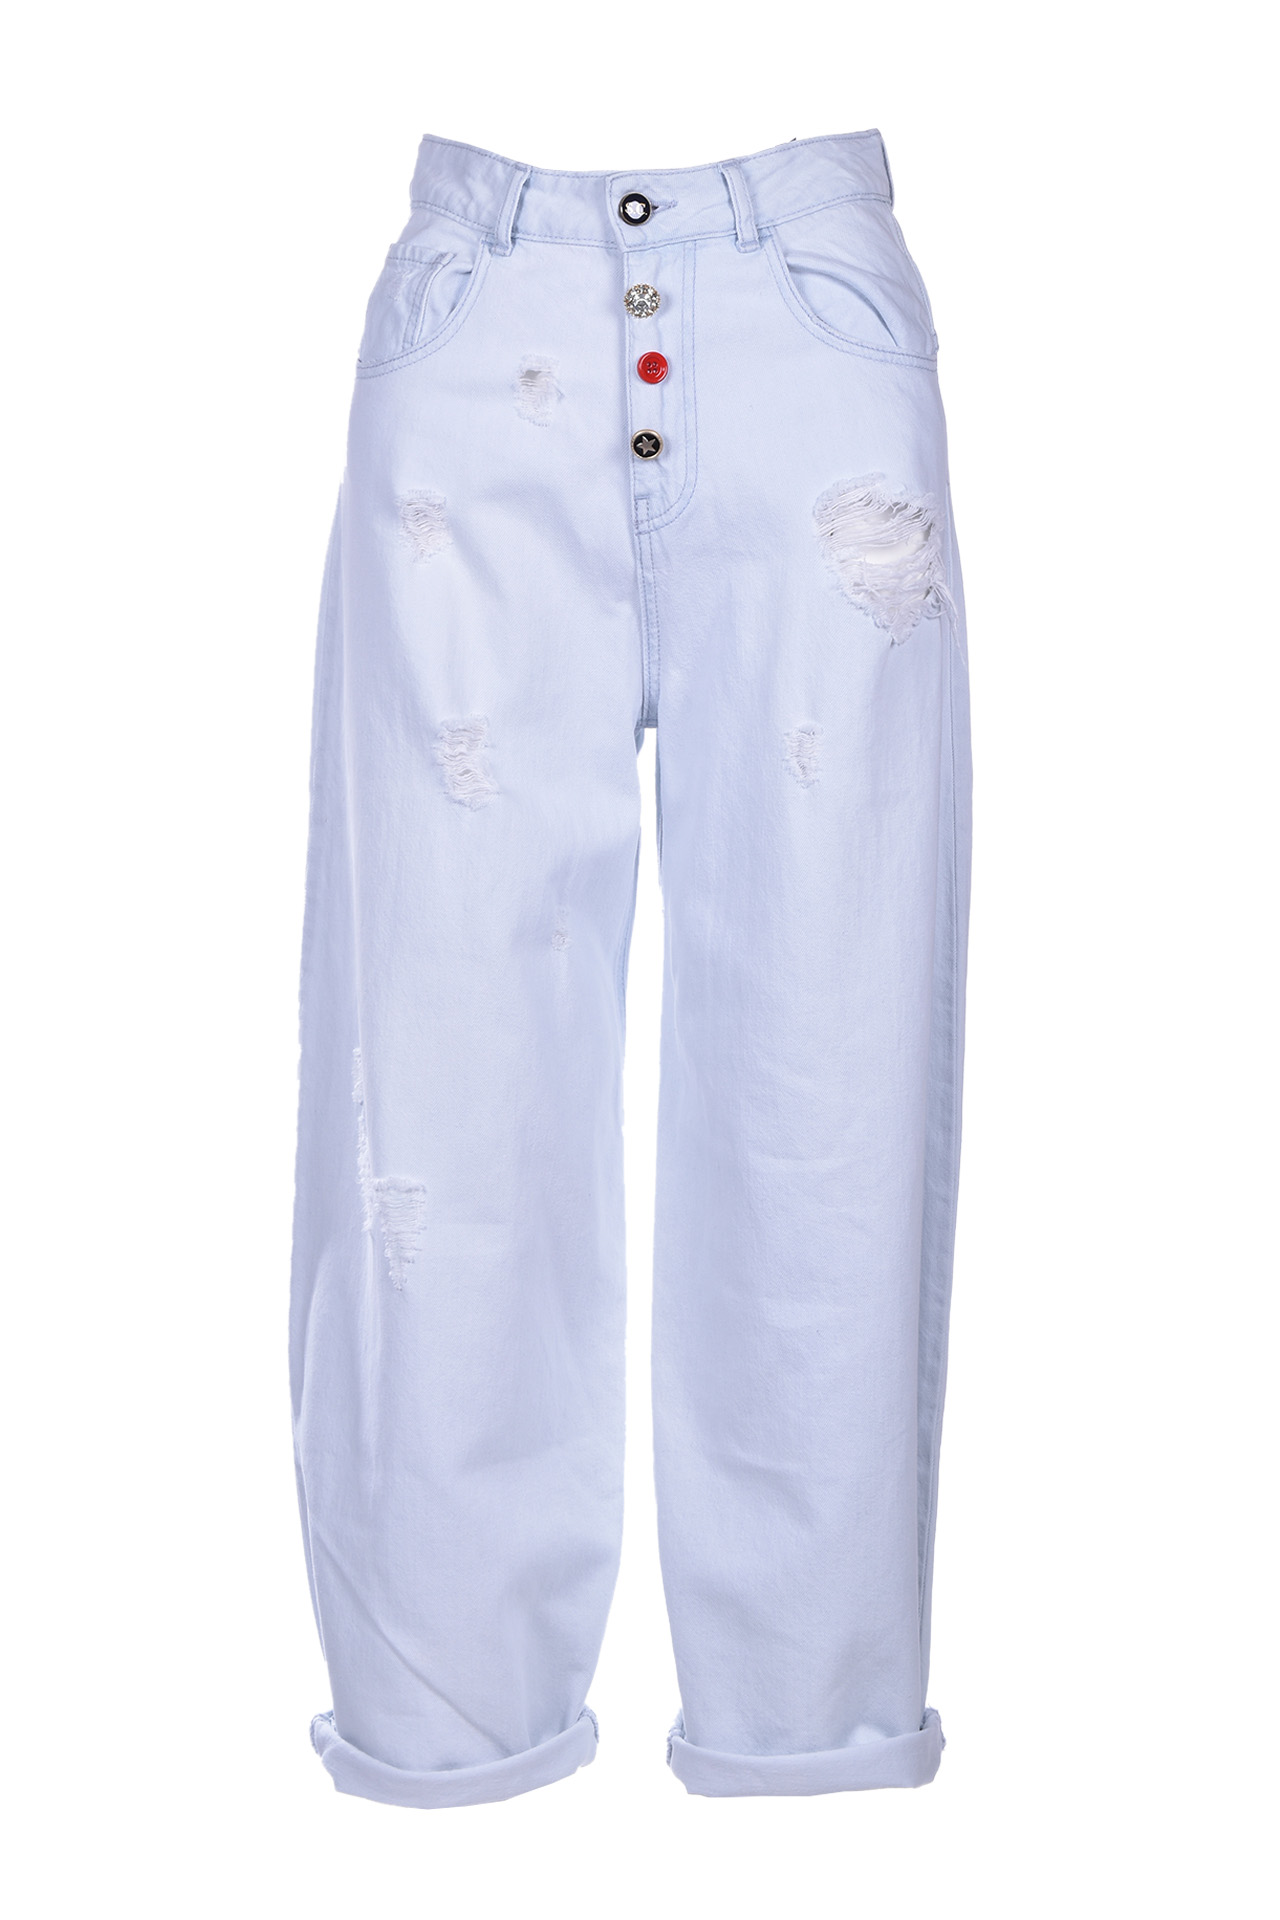 adelaide high waist wide jeans SEMICOUTURE | Jeans | S0SY01JNS01